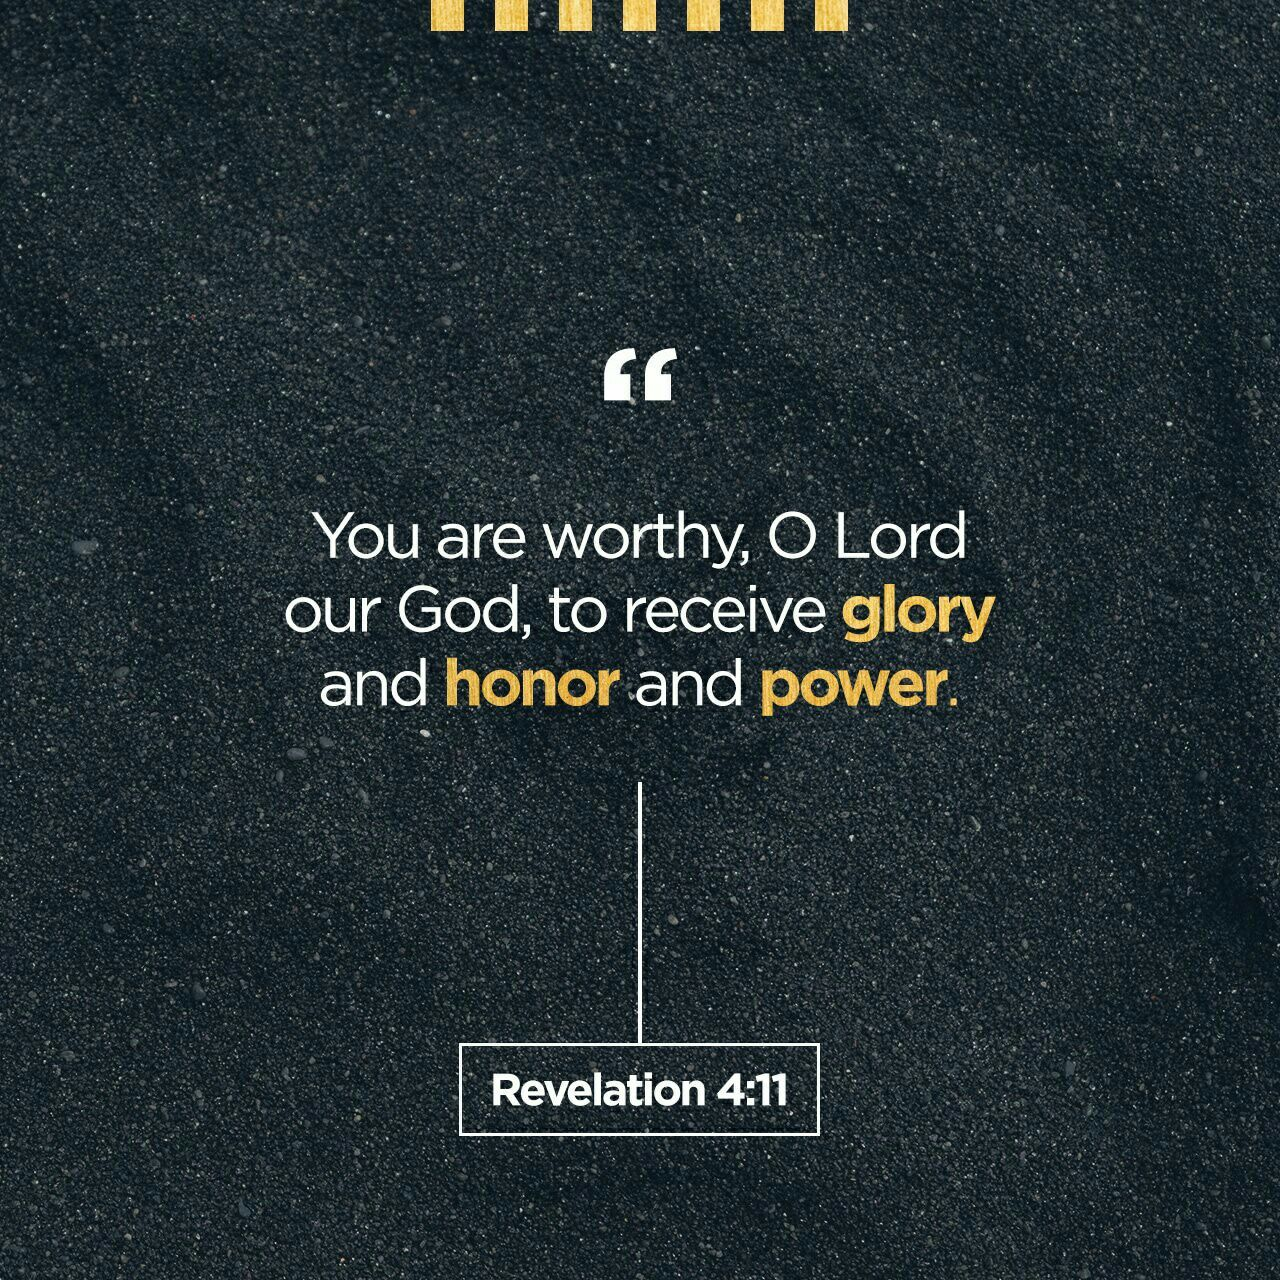 praisefitshim Revelation 4, Bible apps, Daily bible verse